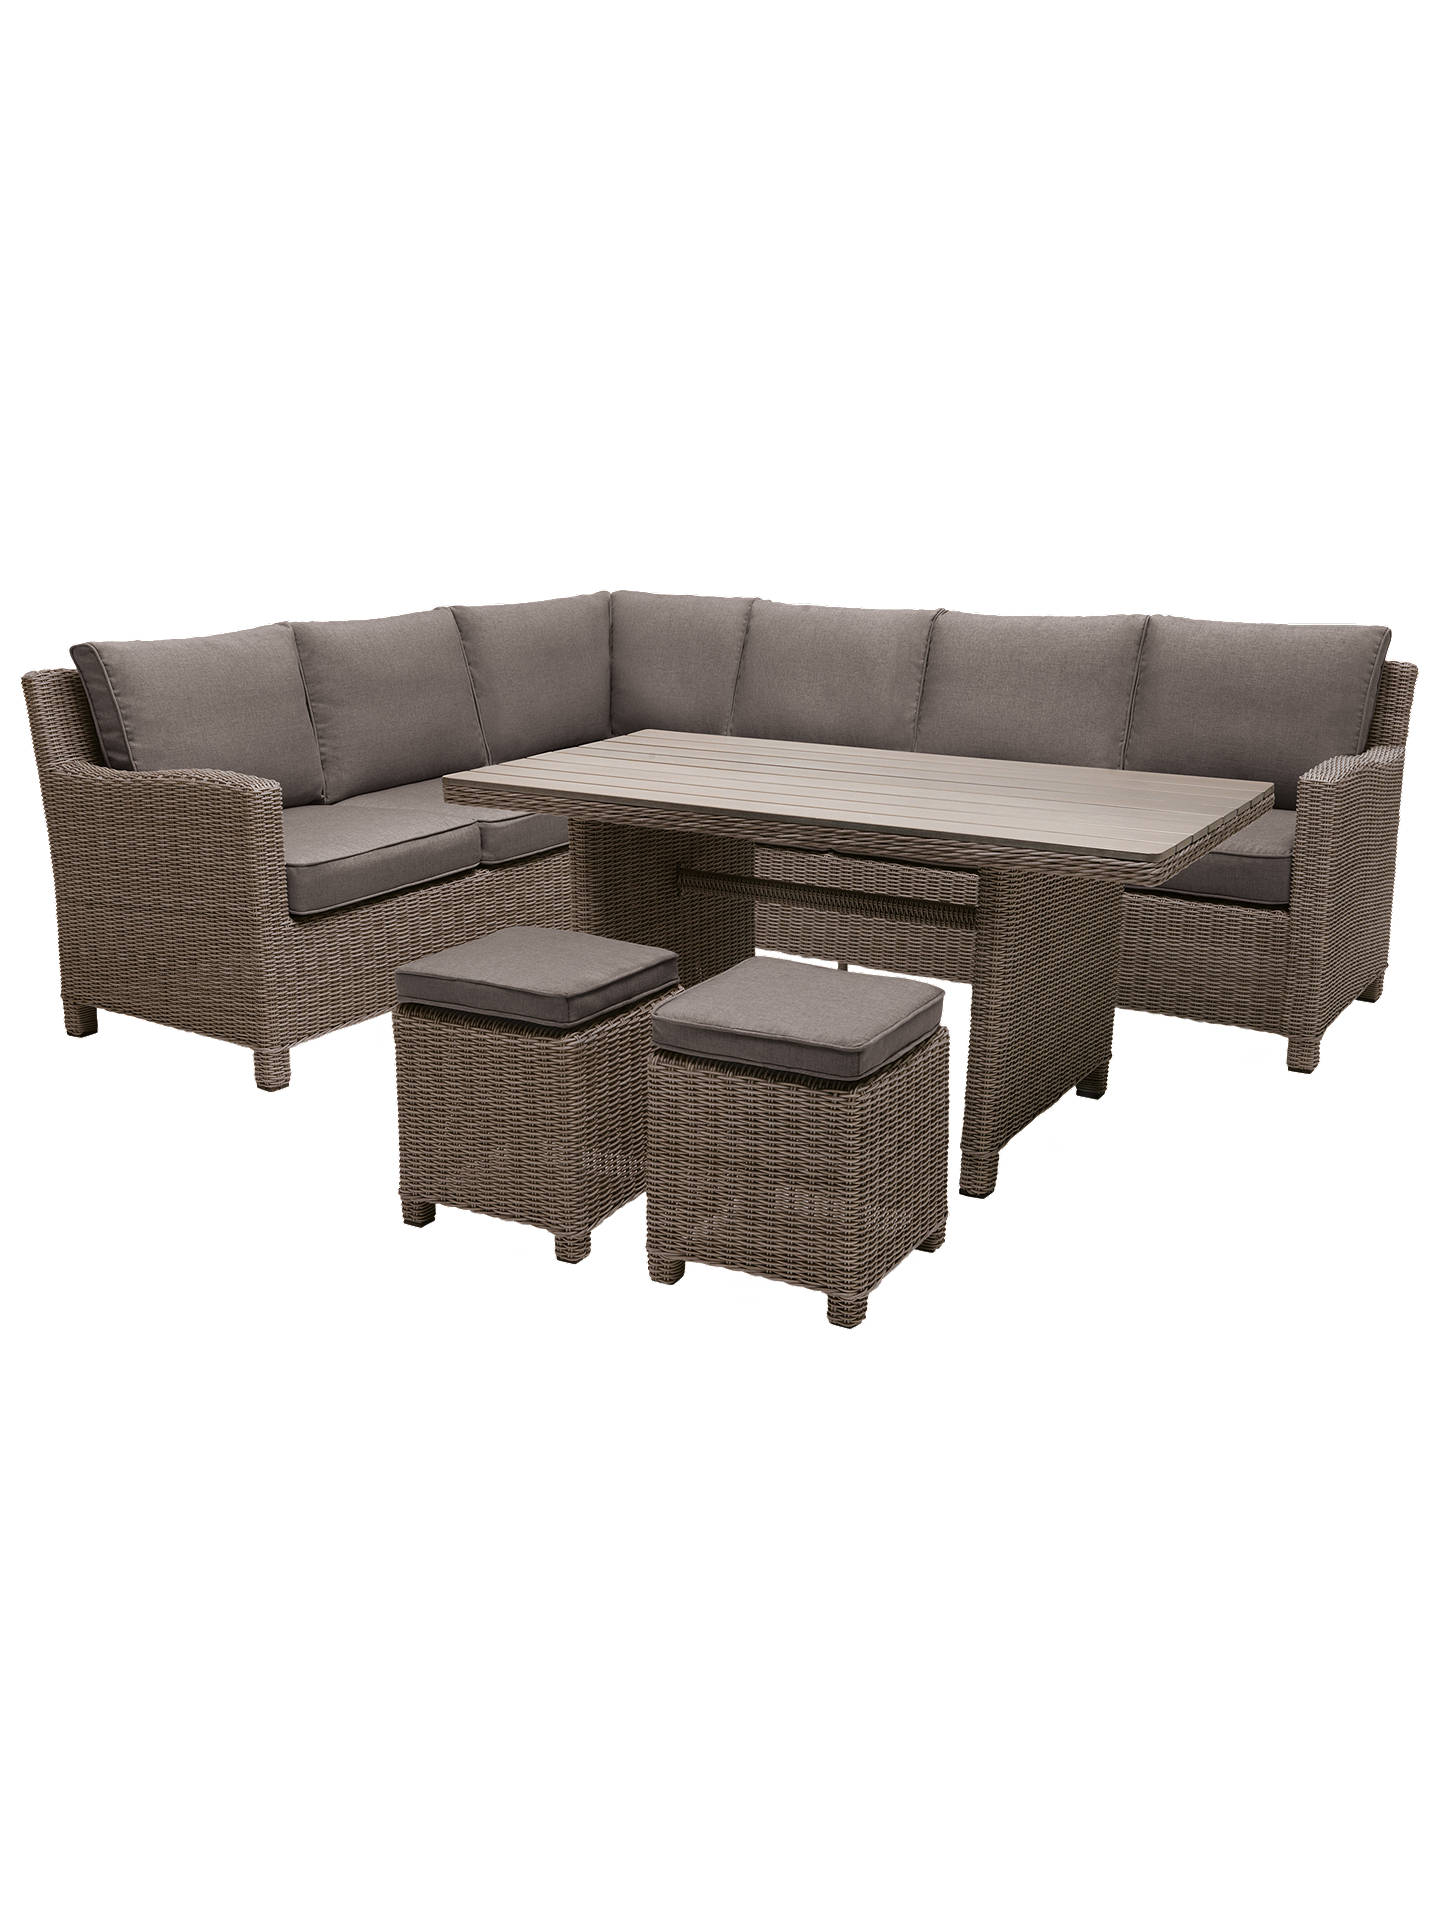 Kettler Palma 8 Seater Garden Corner Lounging Table And